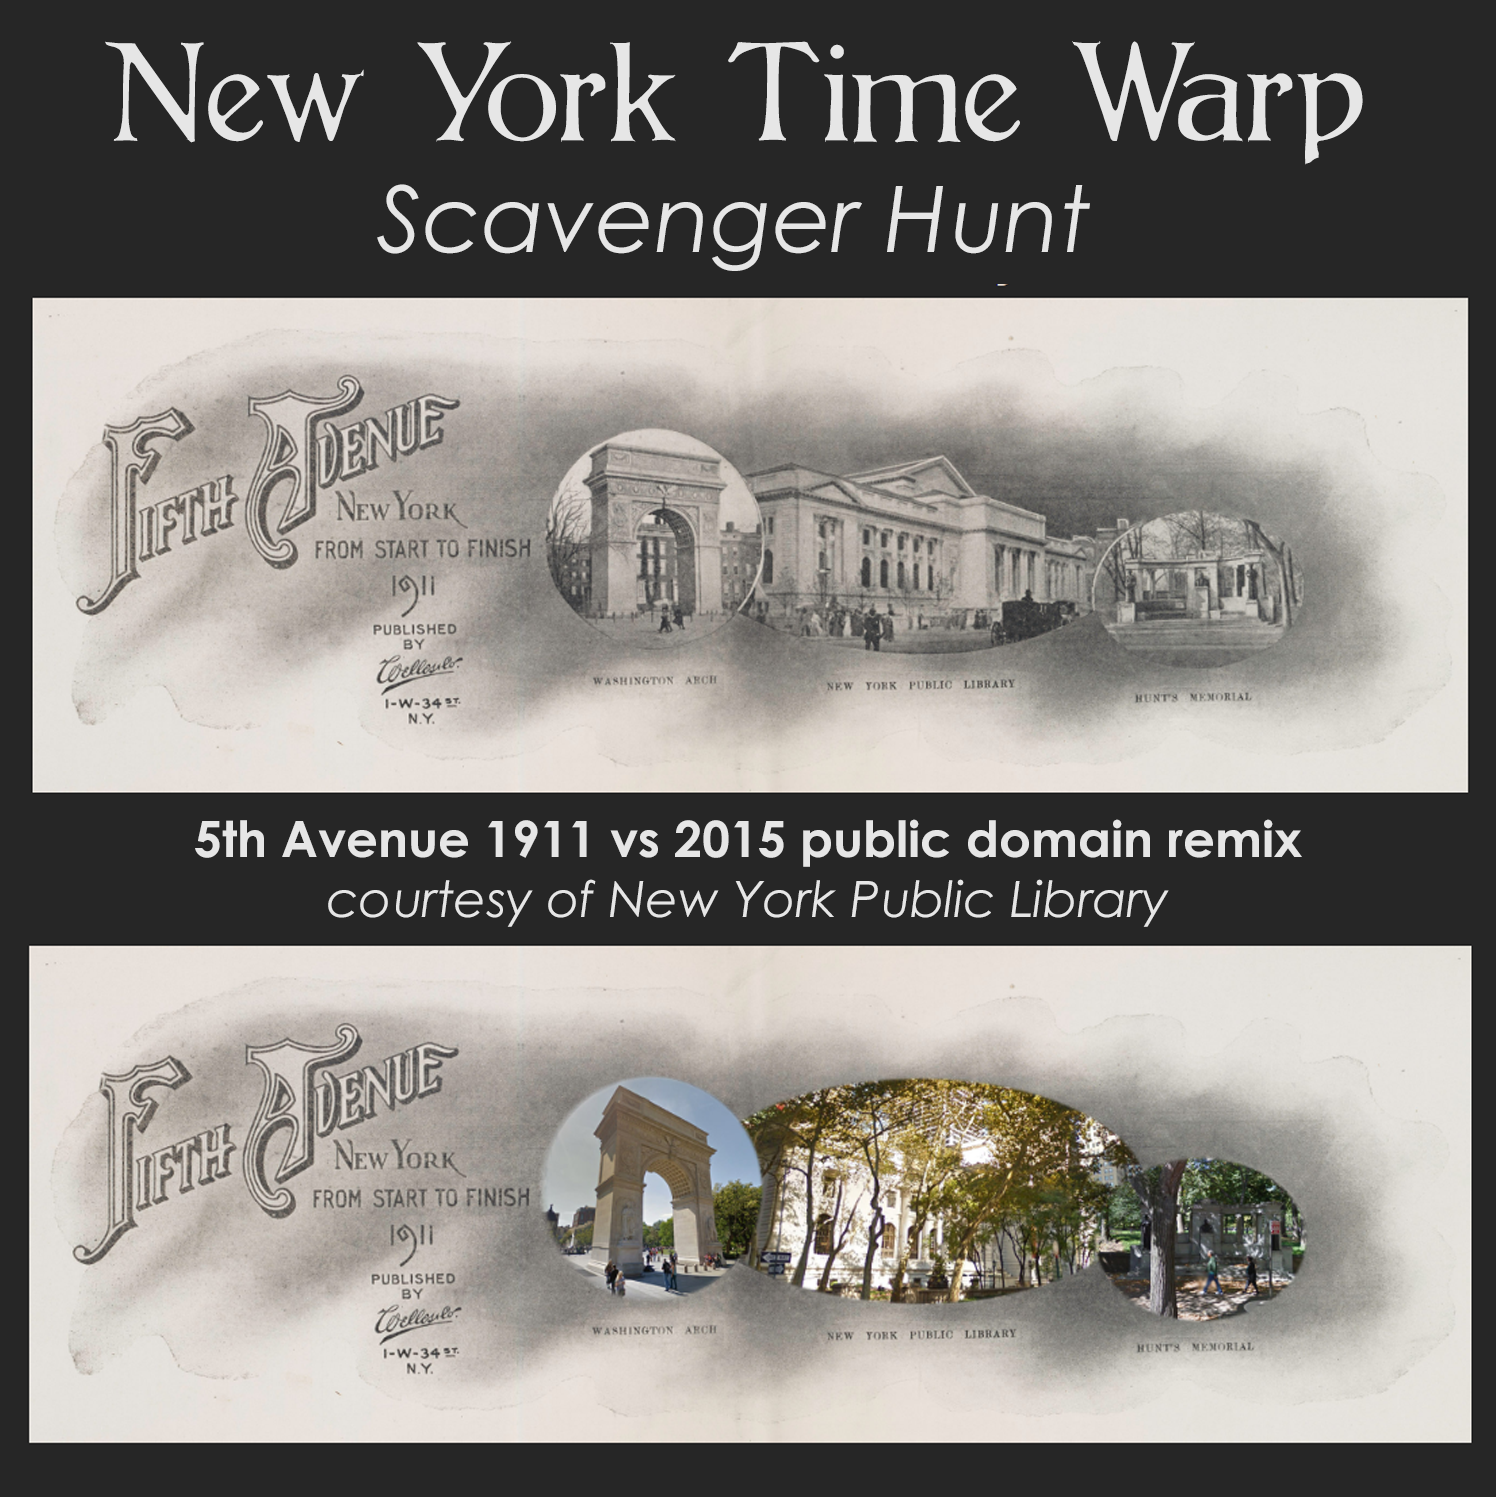 New York Public Library 5th Avenue public domain remix time warp scavenger hunt